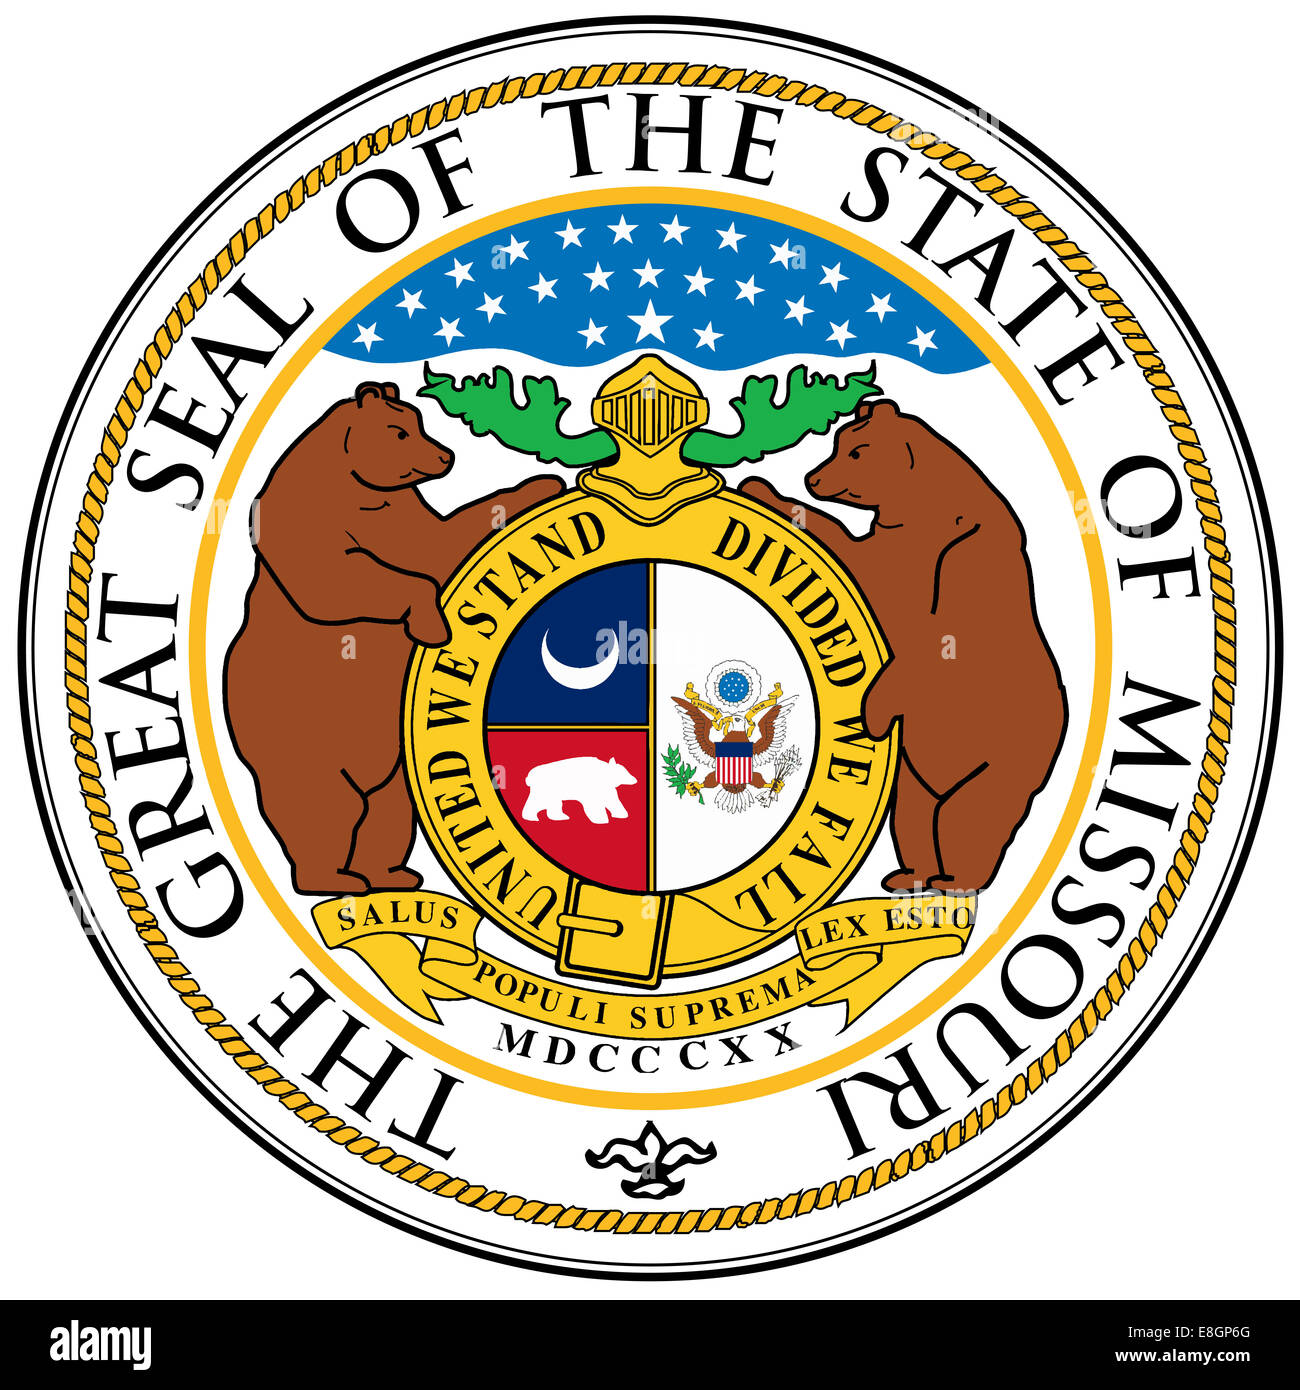 The great seal of the state of Missouri - Stock Image